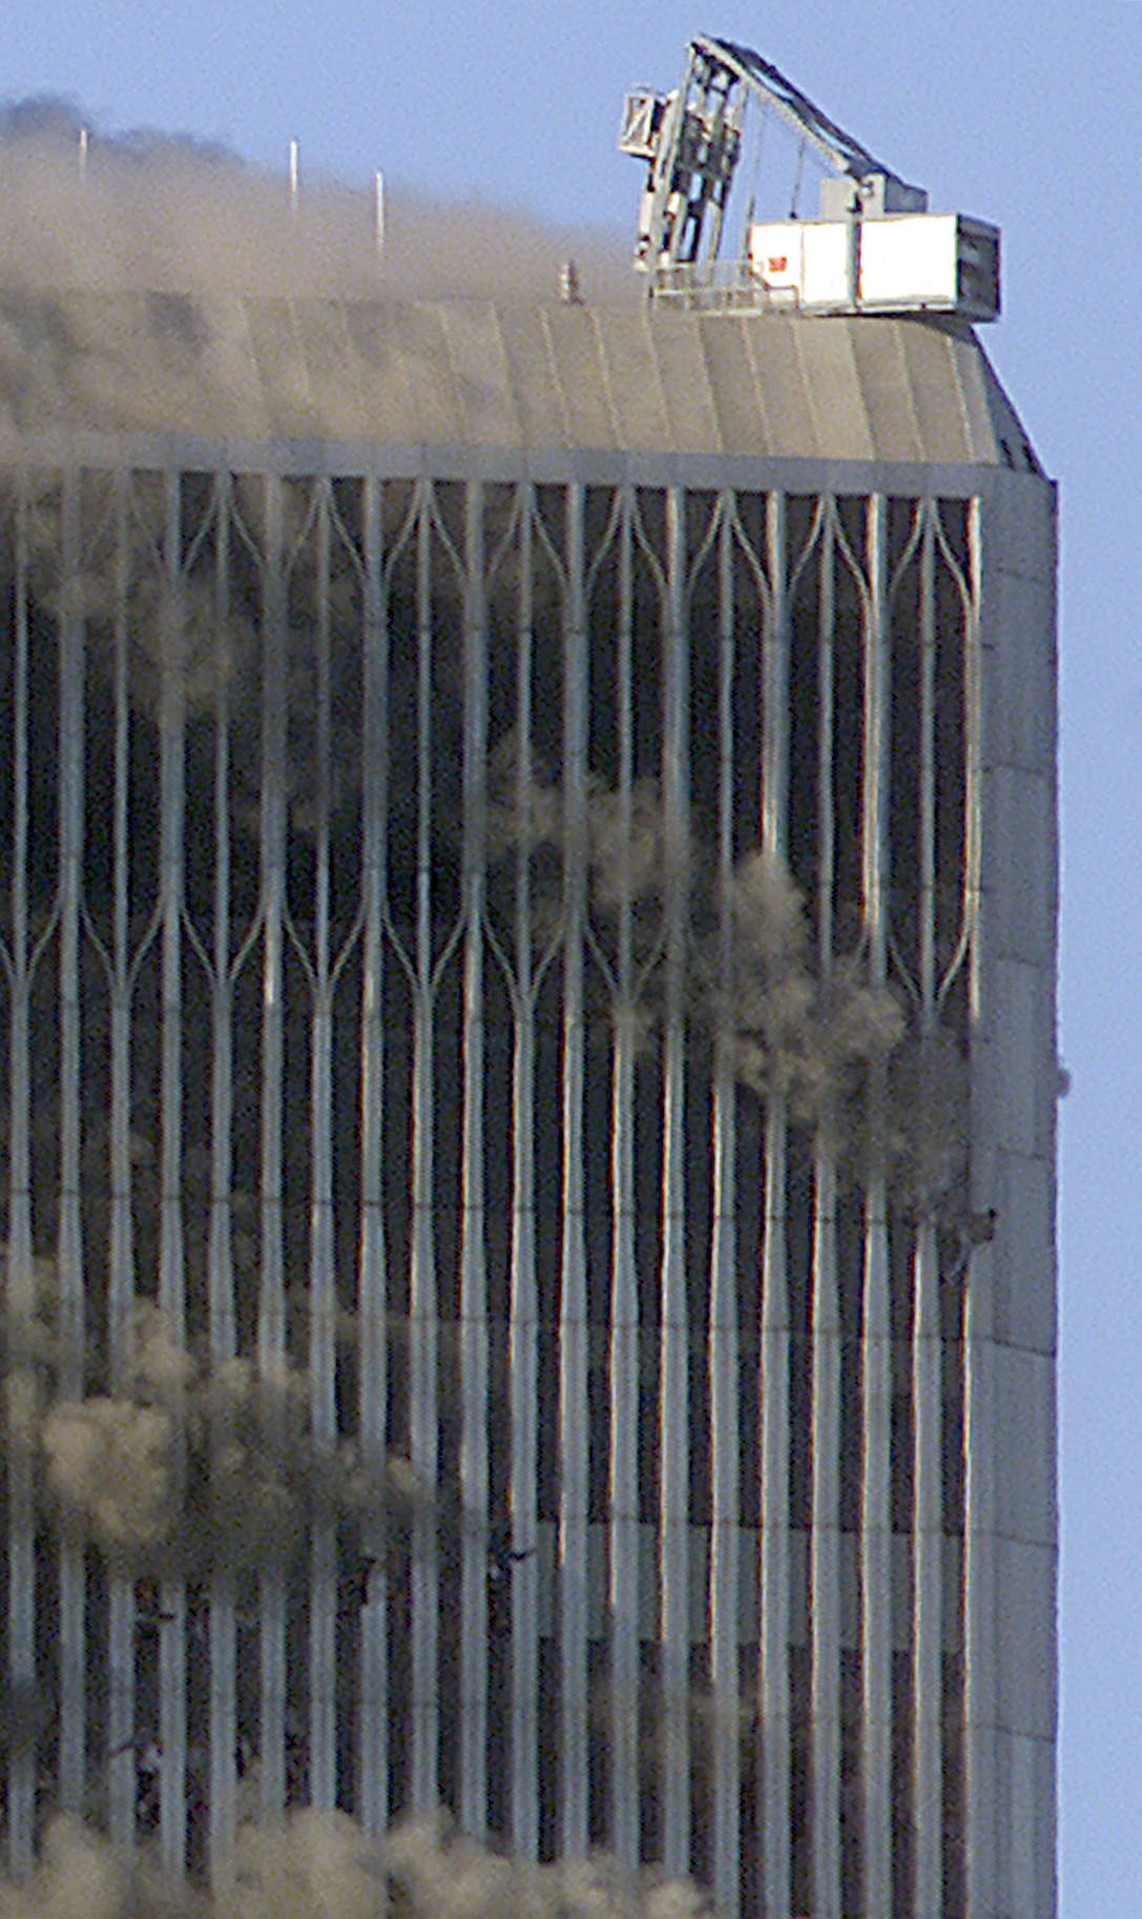 september 11 | aftermath